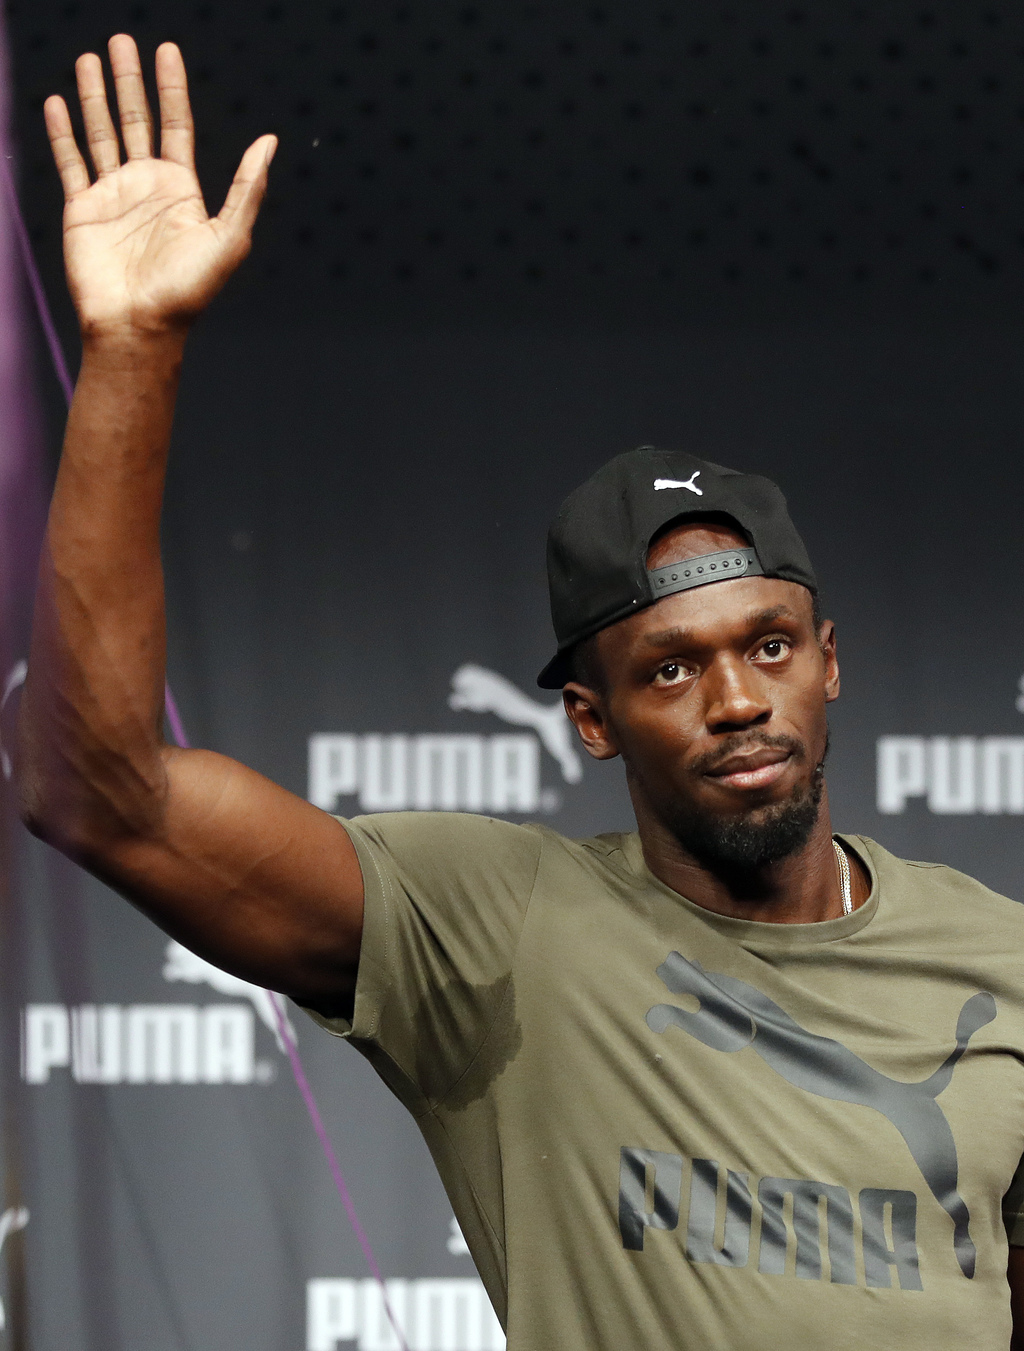 Jamaican athlete Usain Bolt waves after a press conference ahead of the World Athletics championships in London, Tuesday, Aug. 1, 2017. Sprint legend ...